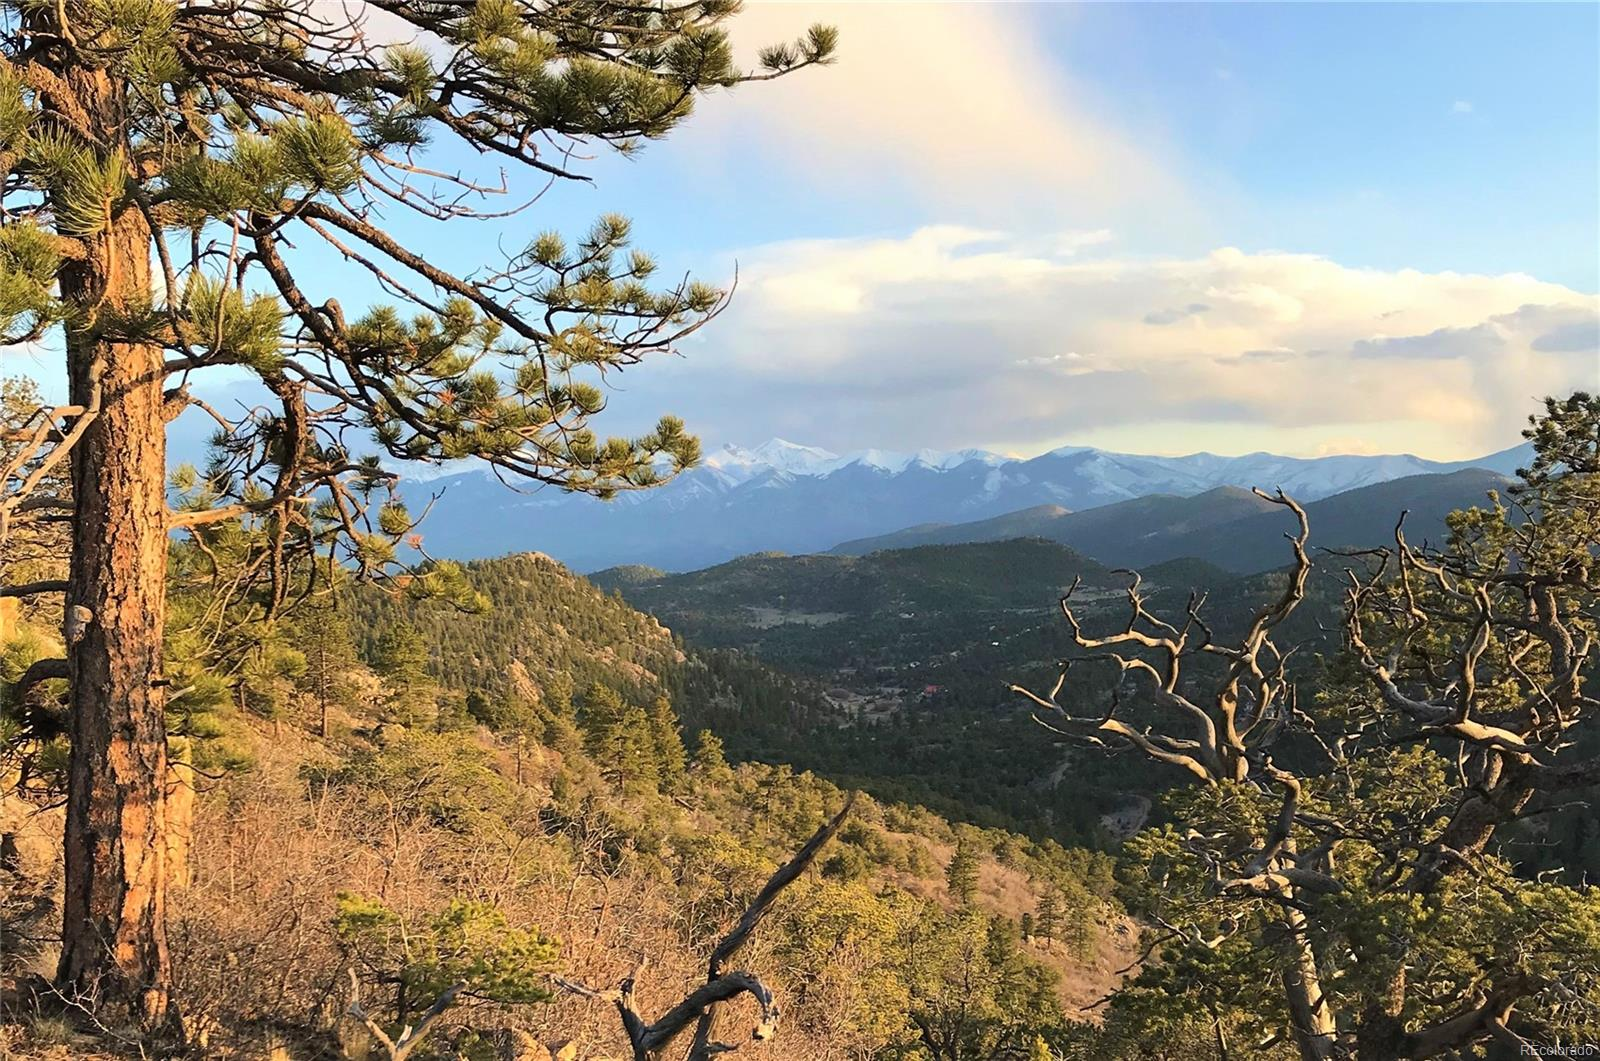 740 CR 16, Cotopaxi, CO 81223 - Cotopaxi, CO real estate listing